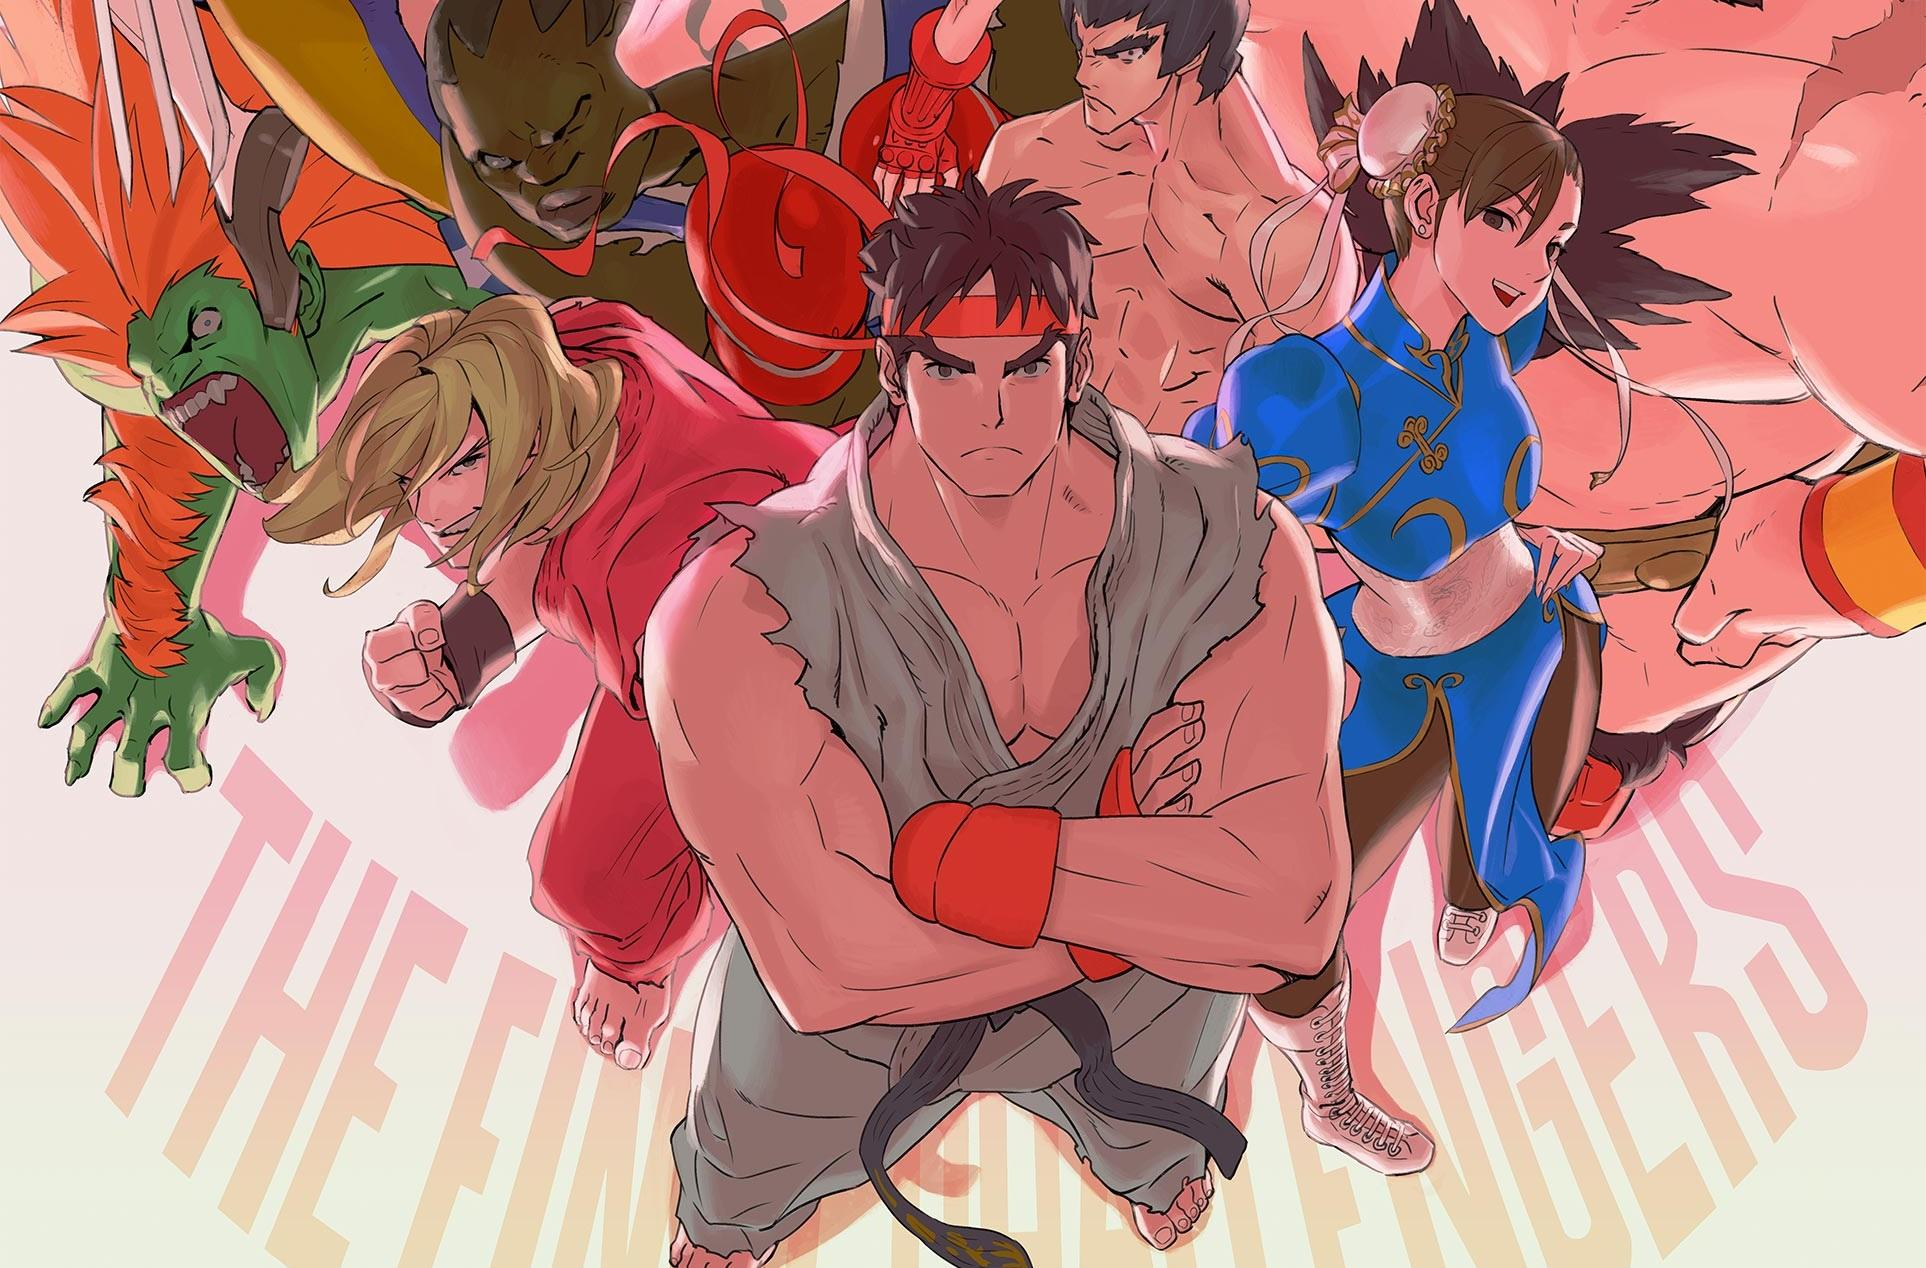 Ultra Street Fighter II Releases on May 26th